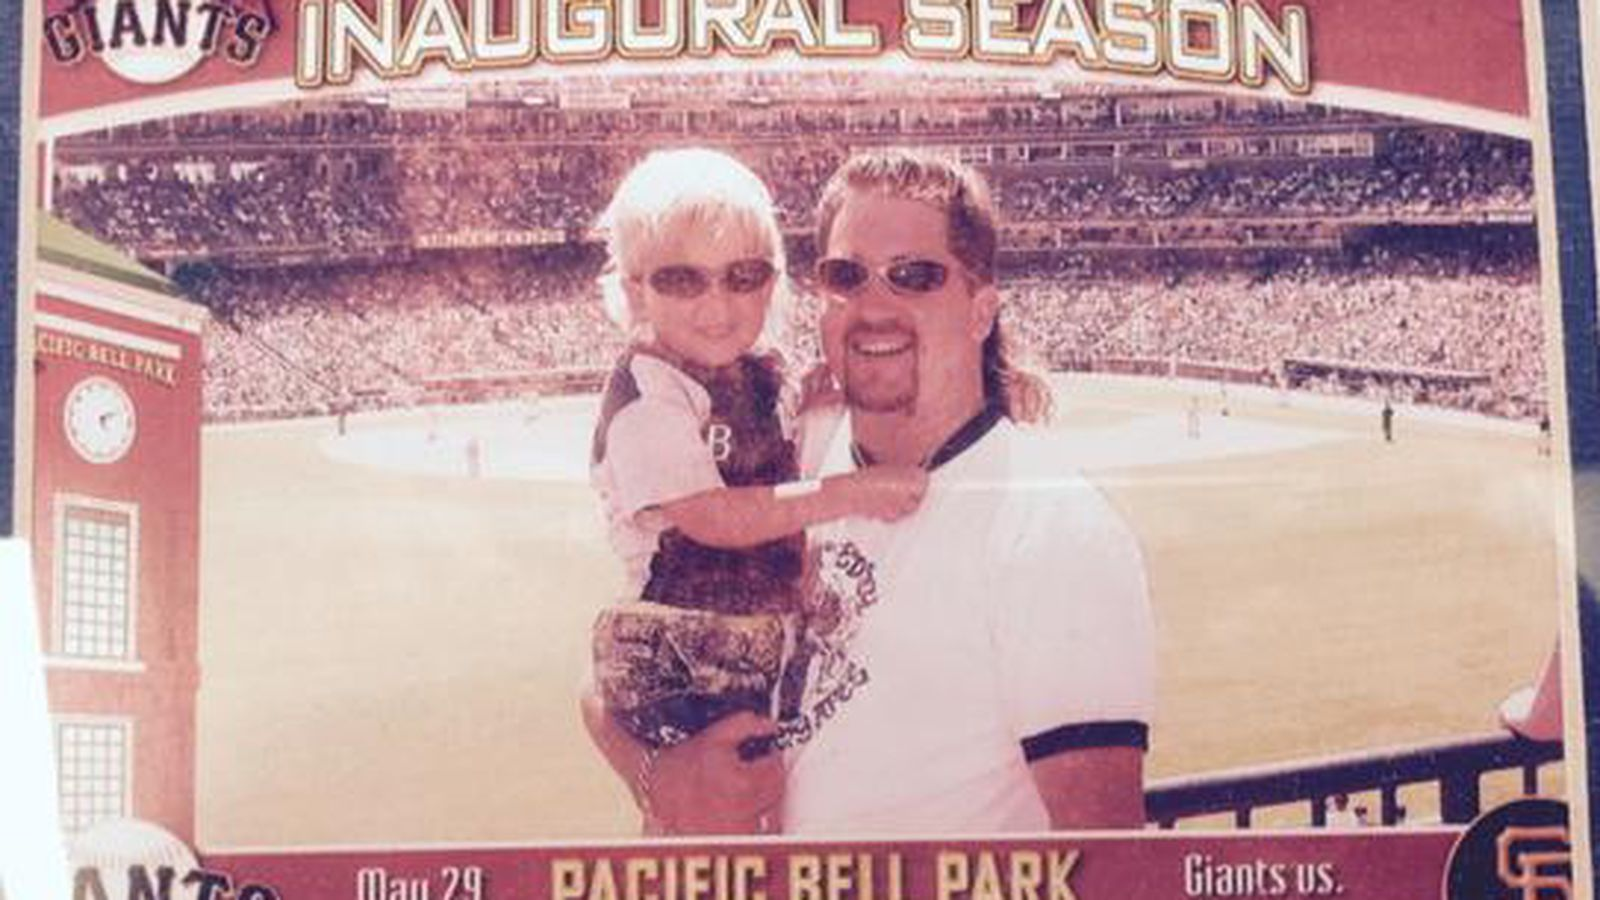 Guy Fieri had a transcendent, unbleached mullet in 2000 ...